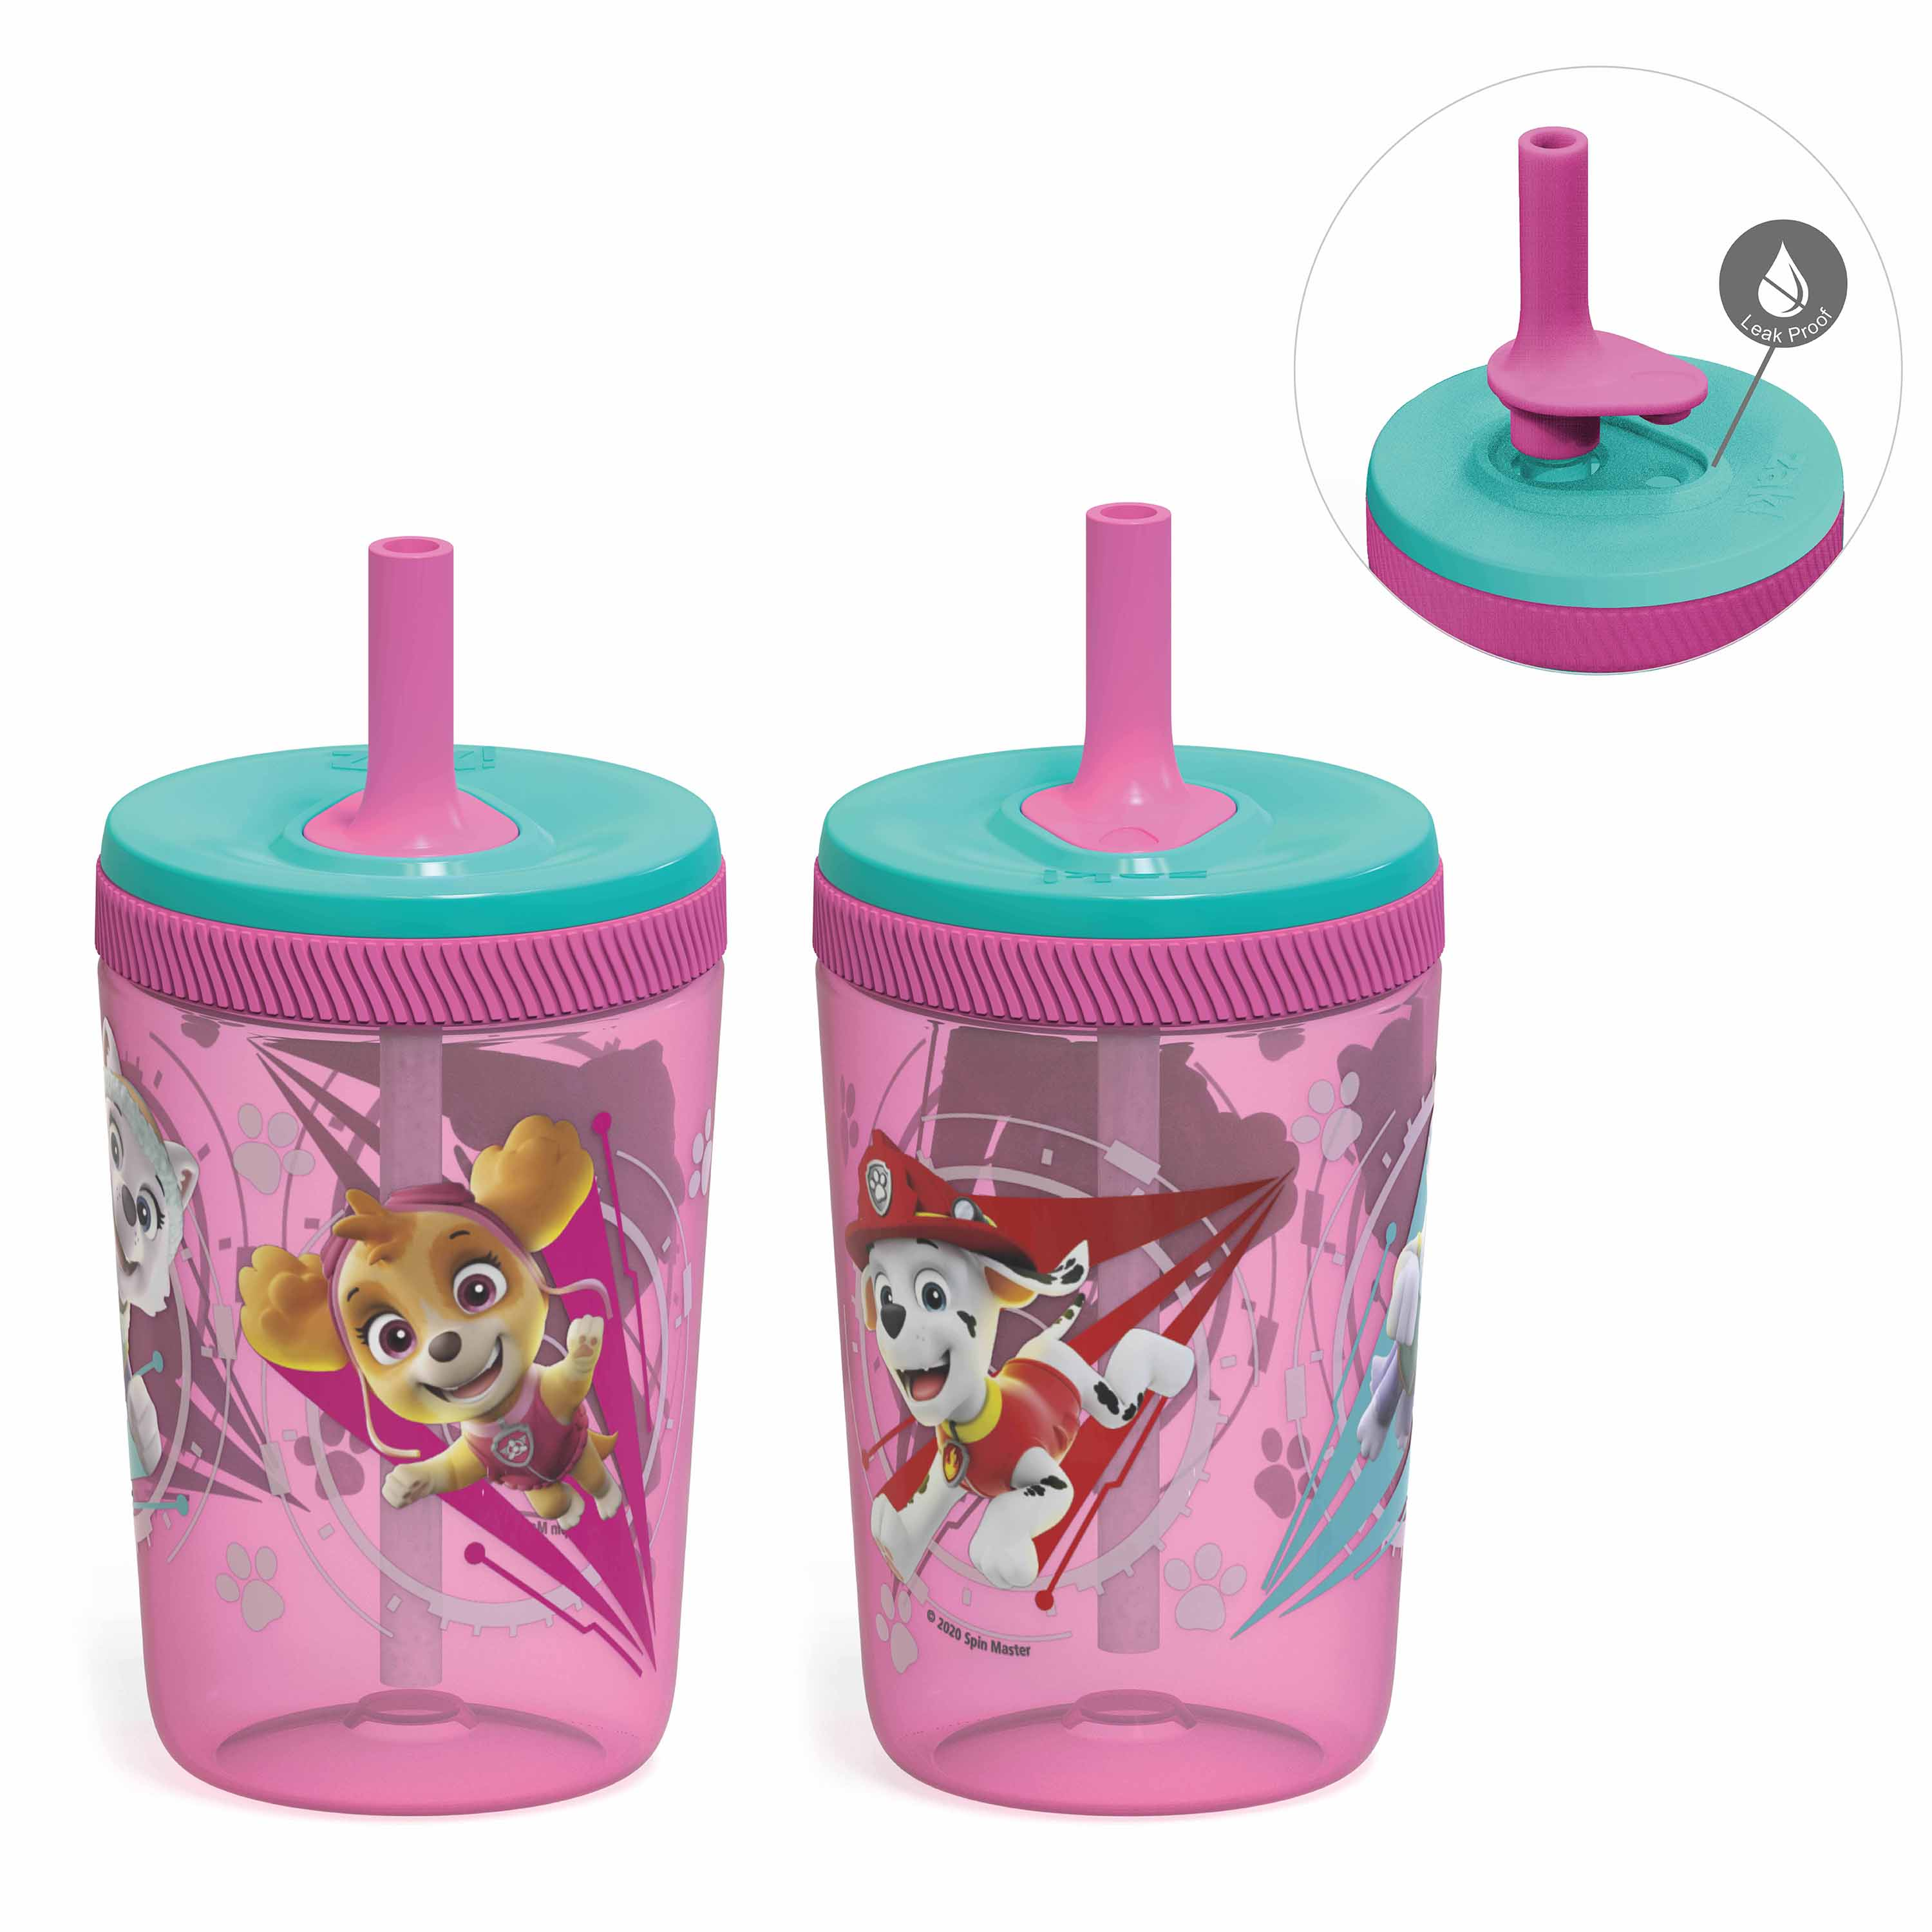 Paw Patrol 15  ounce Plastic Tumbler with Lid and Straw, Marshall and Skye, 2-piece set slideshow image 1